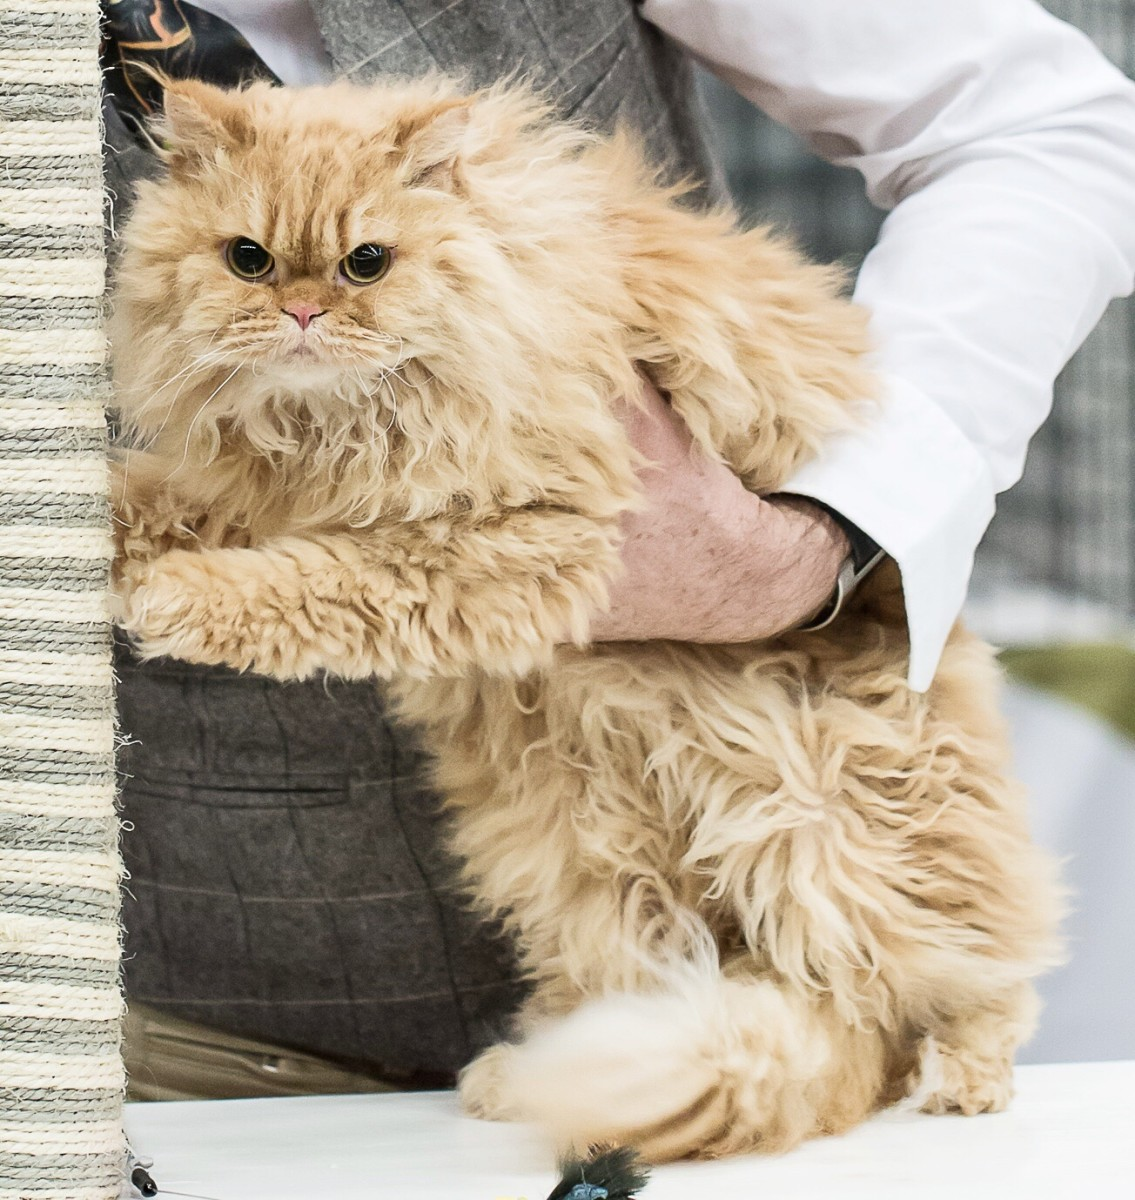 Another long-haired Selkirk Rex